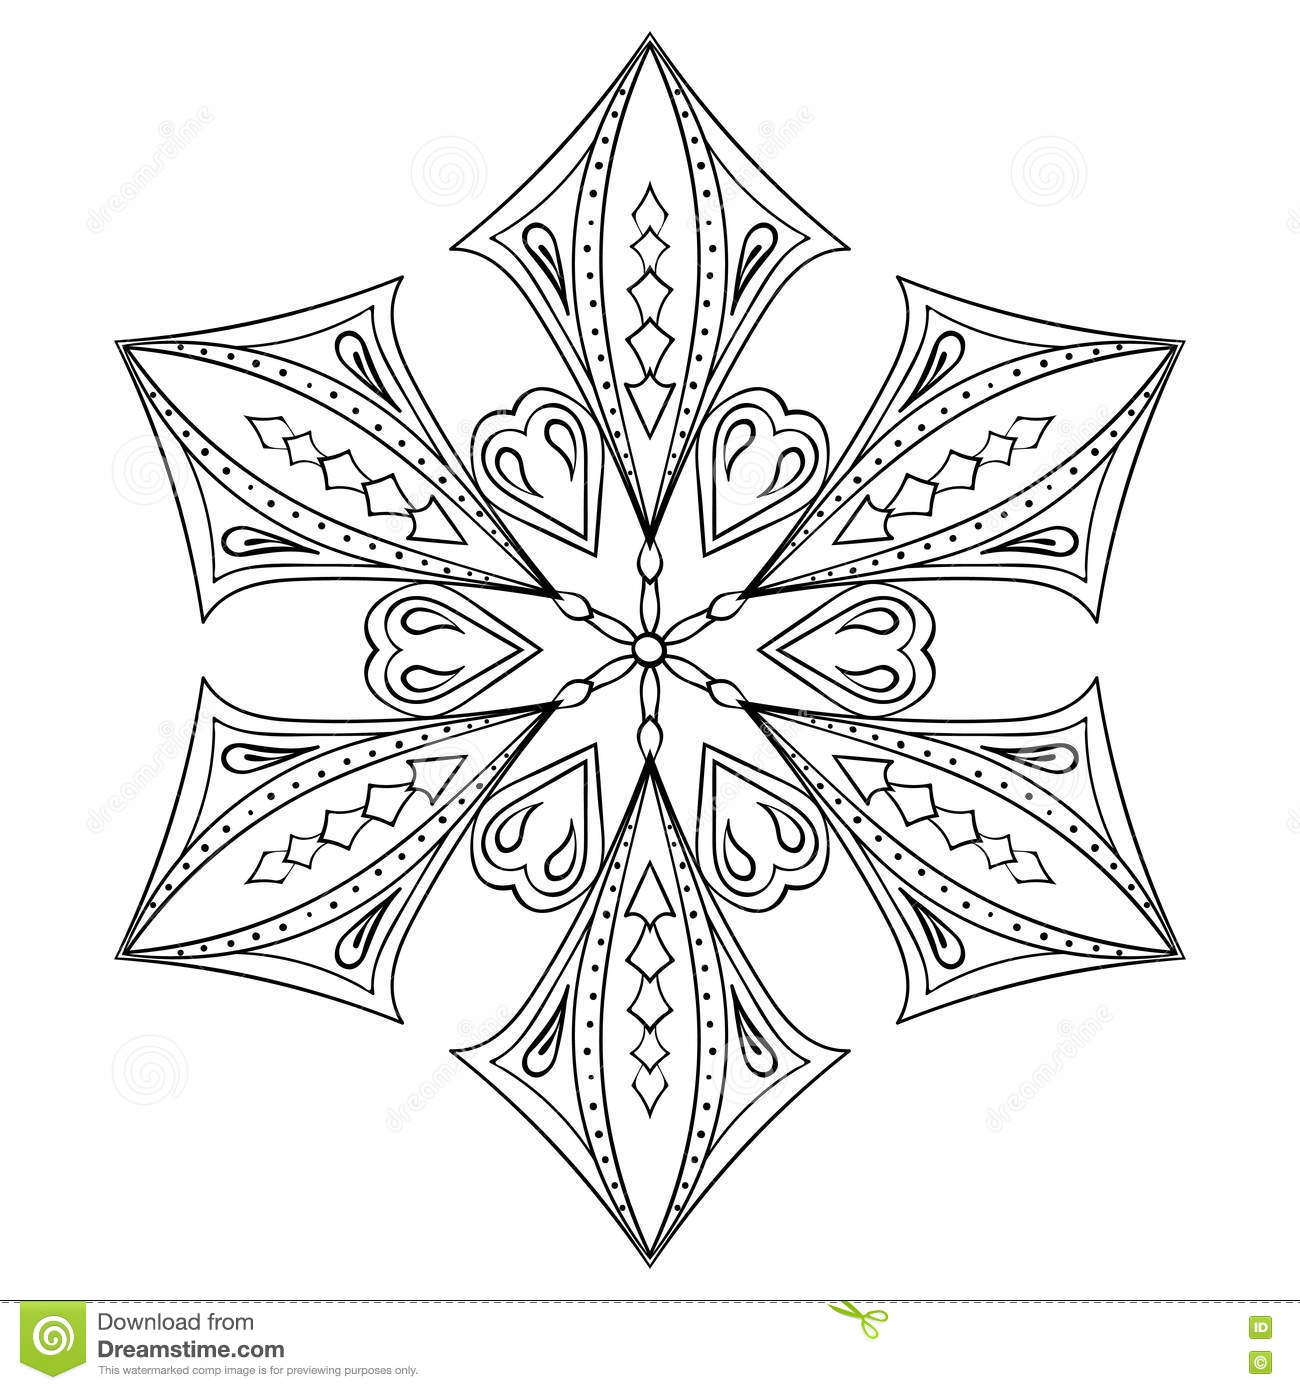 Zentangle Elegant Snow Flake For Adult Coloring Pages. Vector Or ...